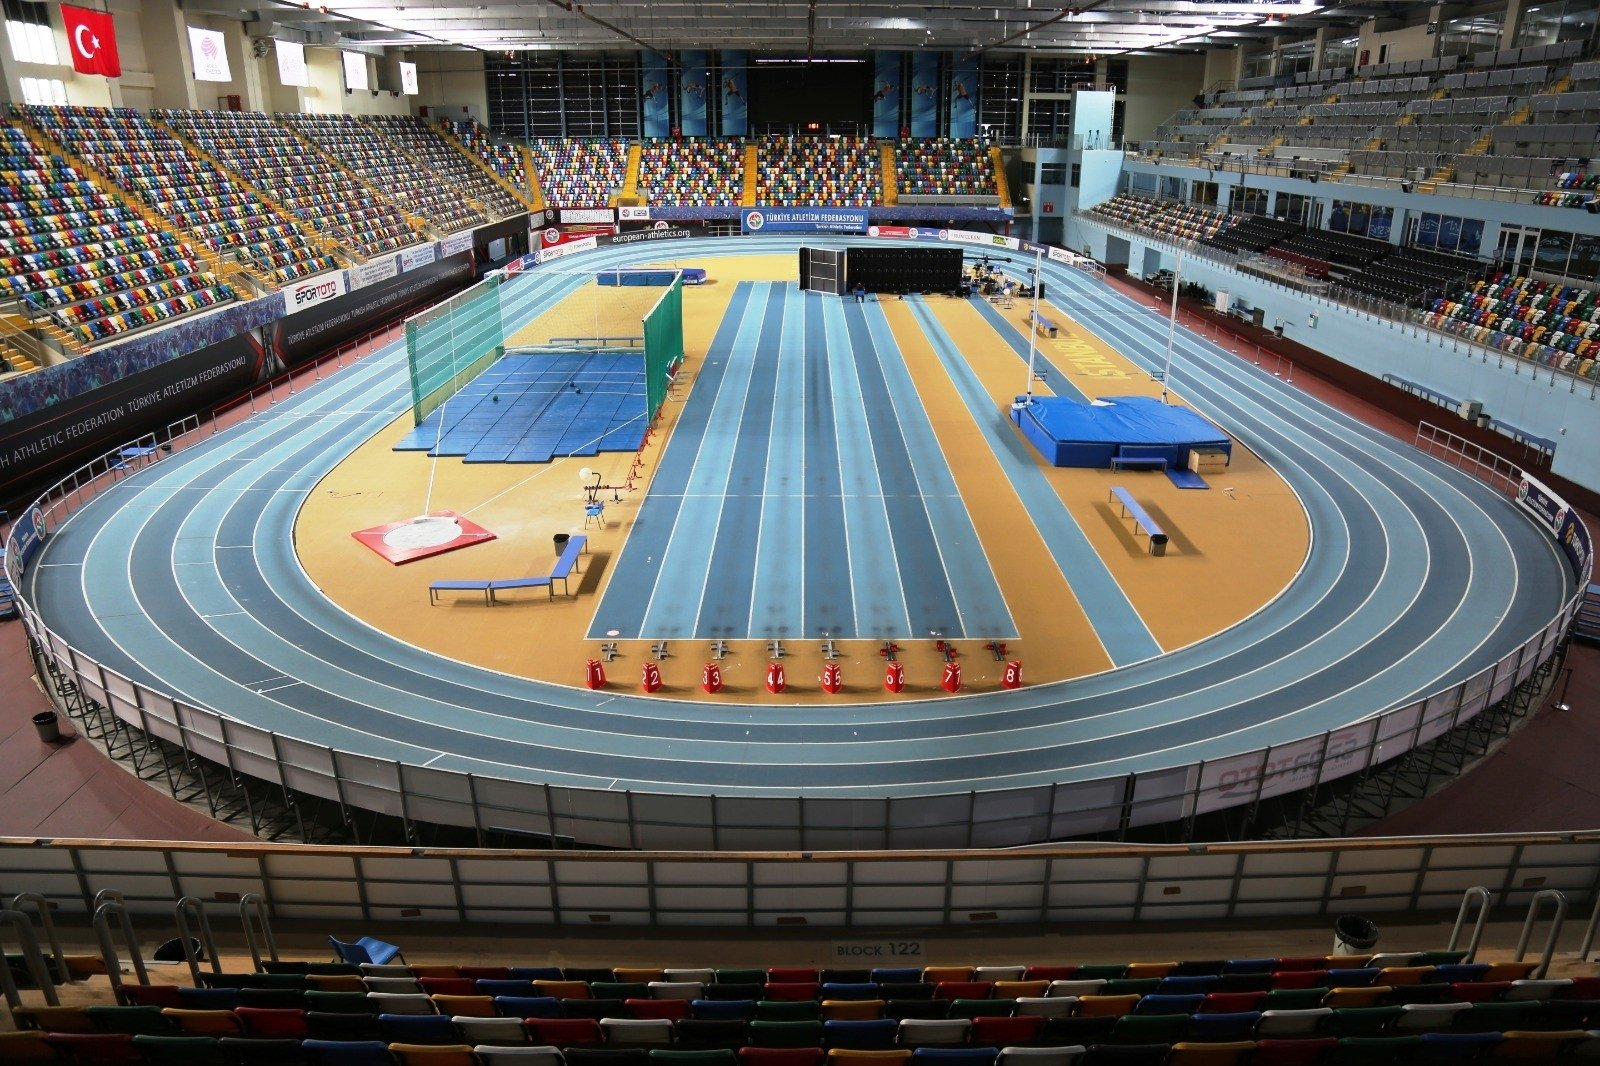 A view of Ataköy Athletics Arena where the championships will be held, in Istanbul, Turkey, Nov. 11, 2020. (İHA Photo)